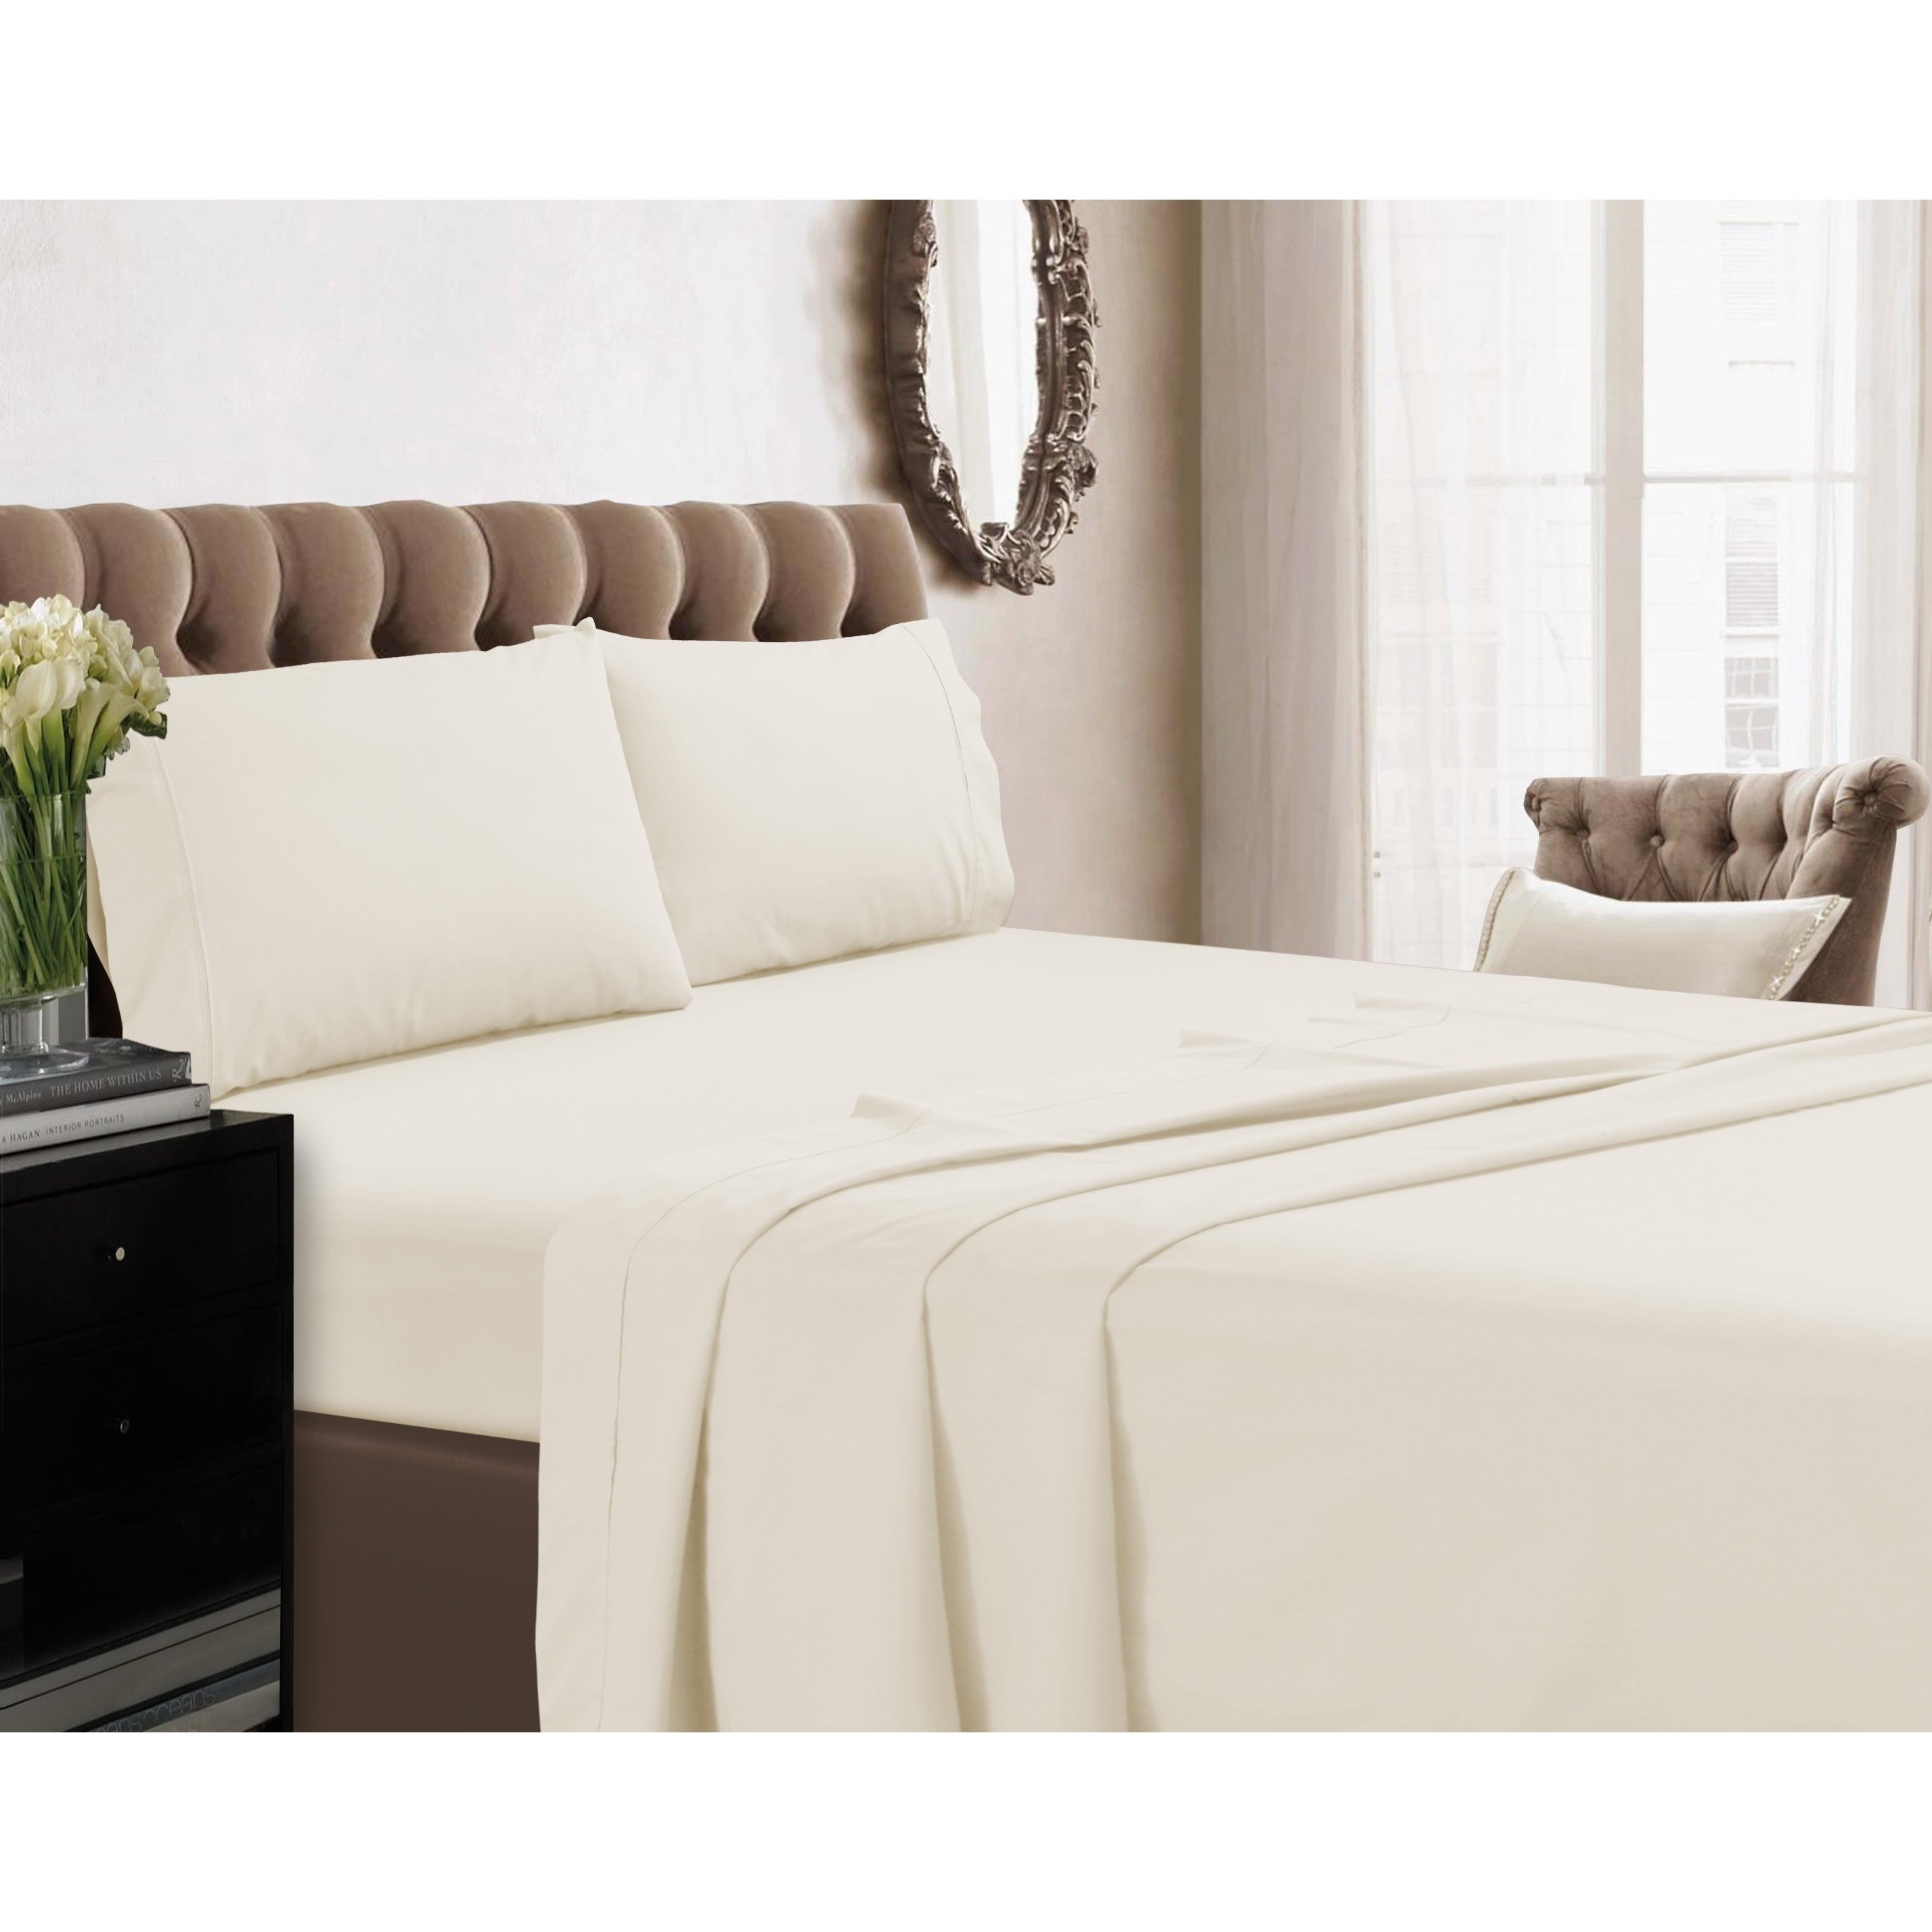 out of stock king bed set off white